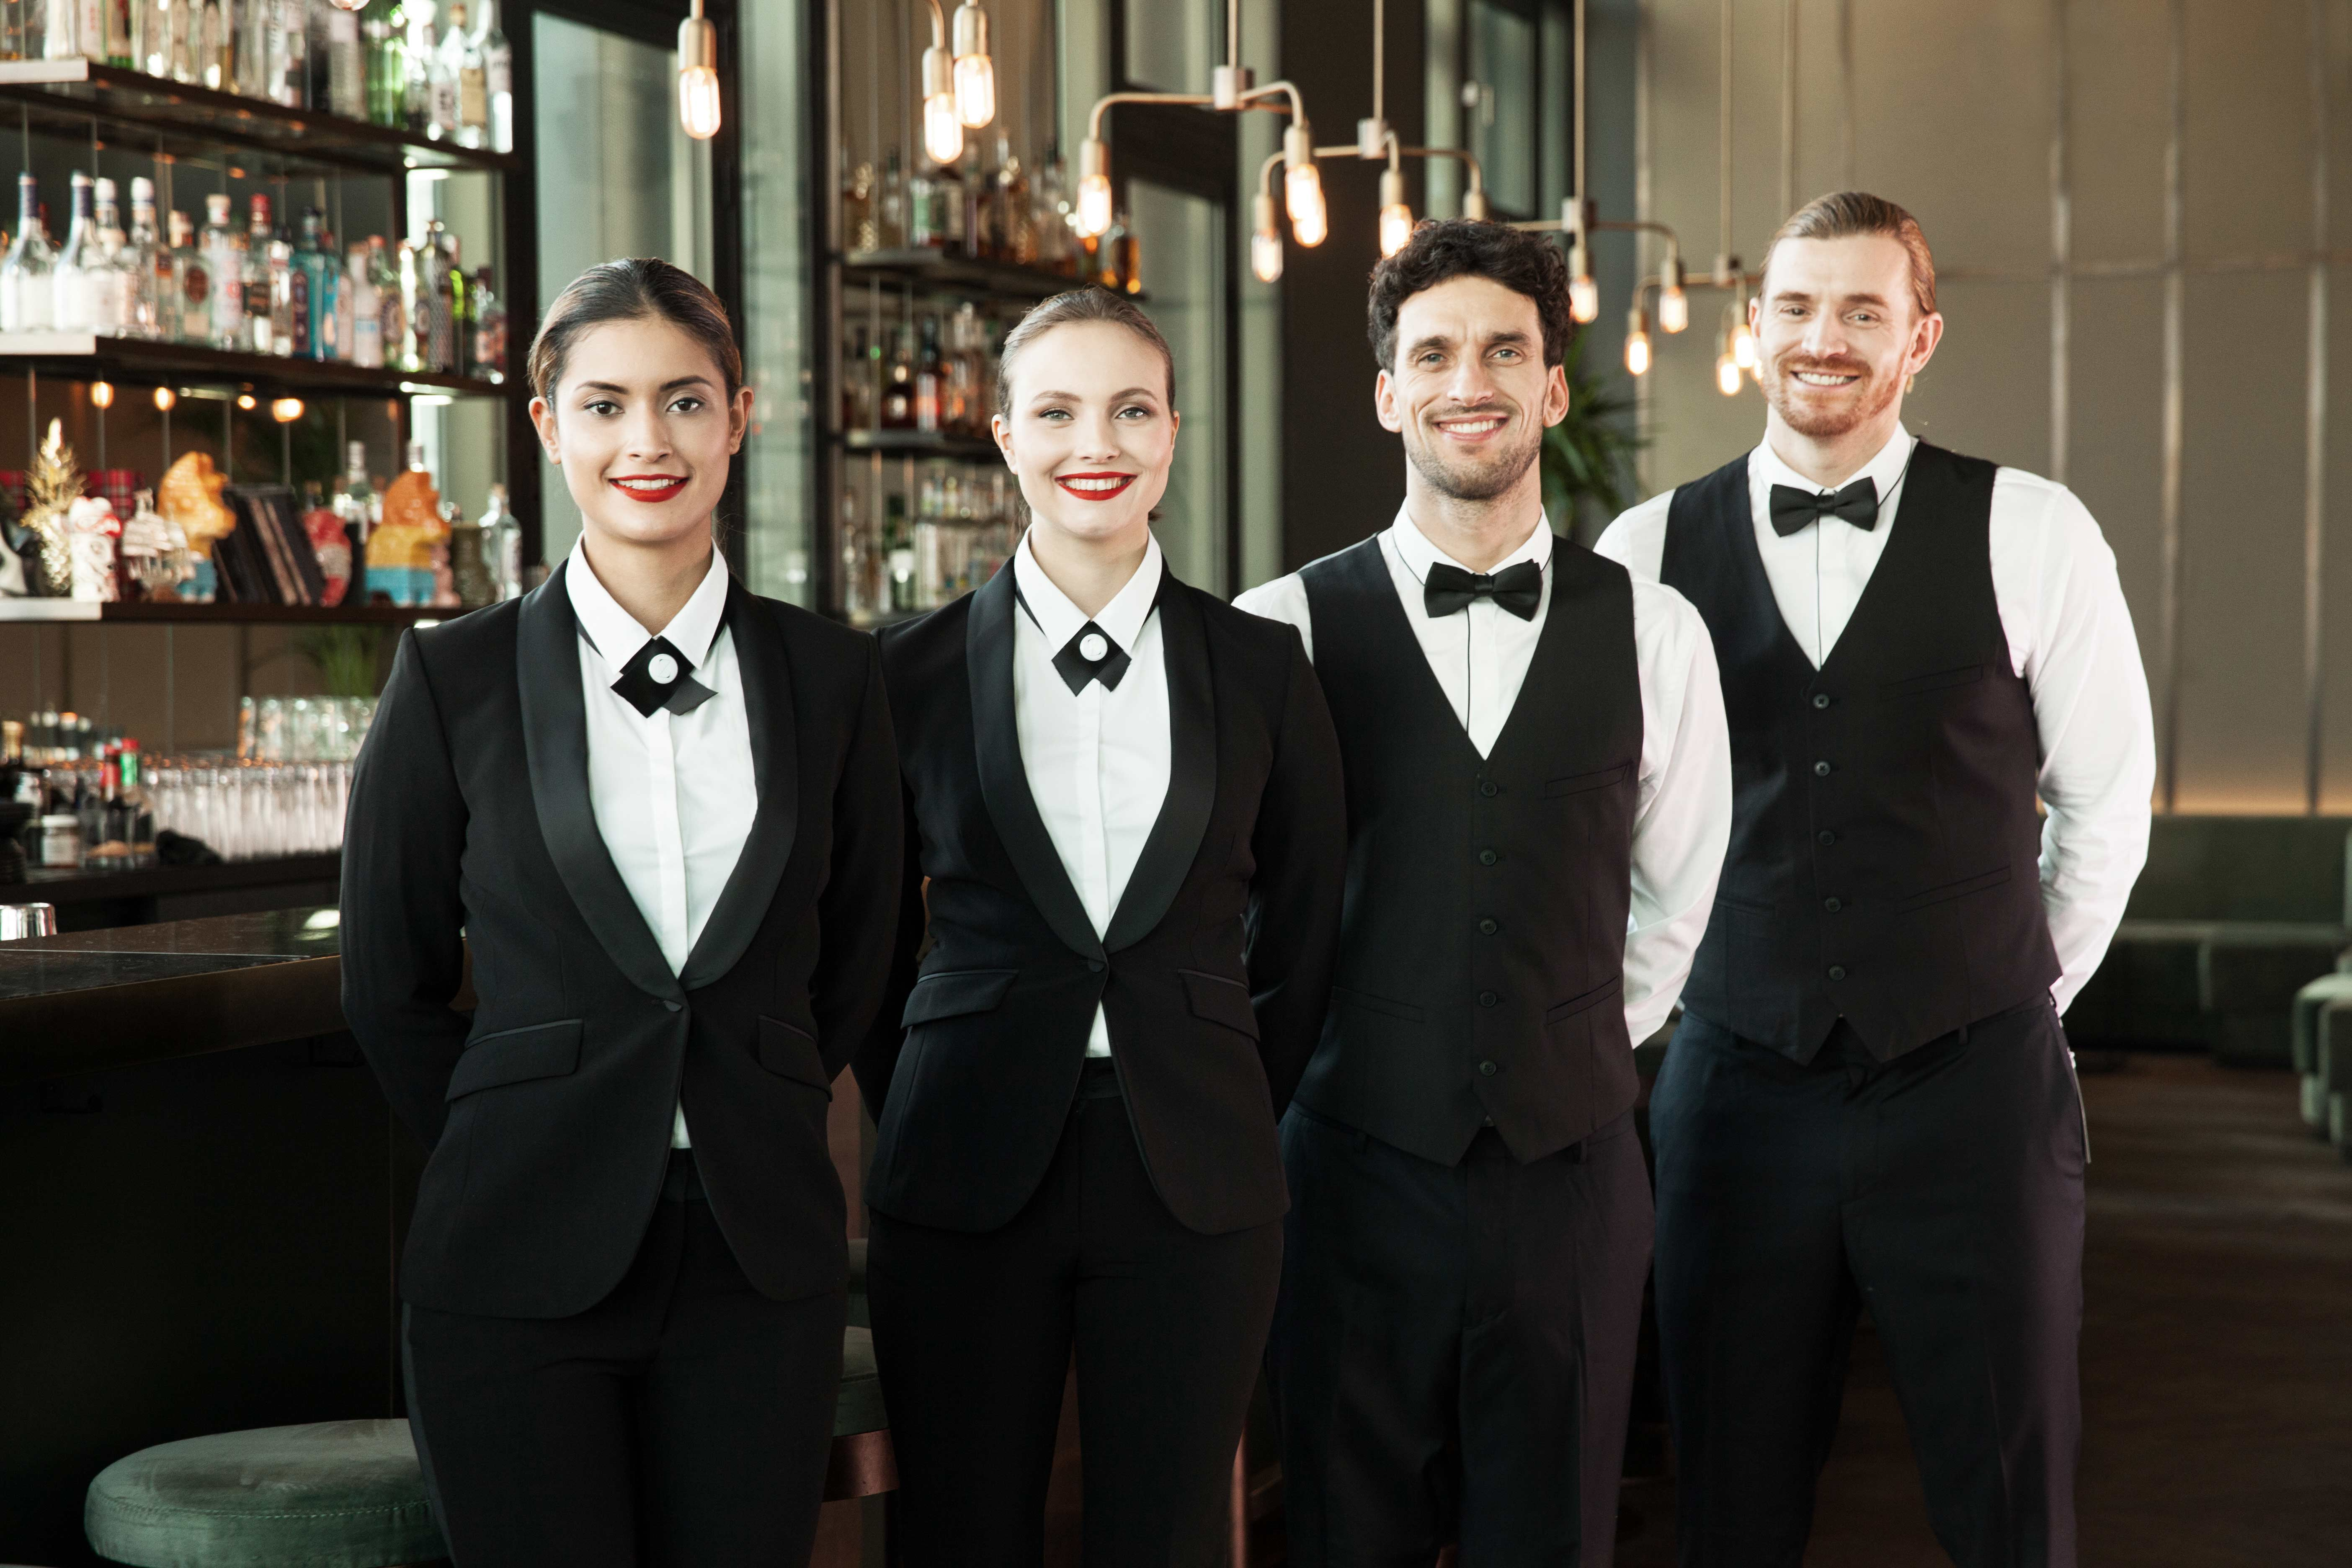 service and bar keeping at your event